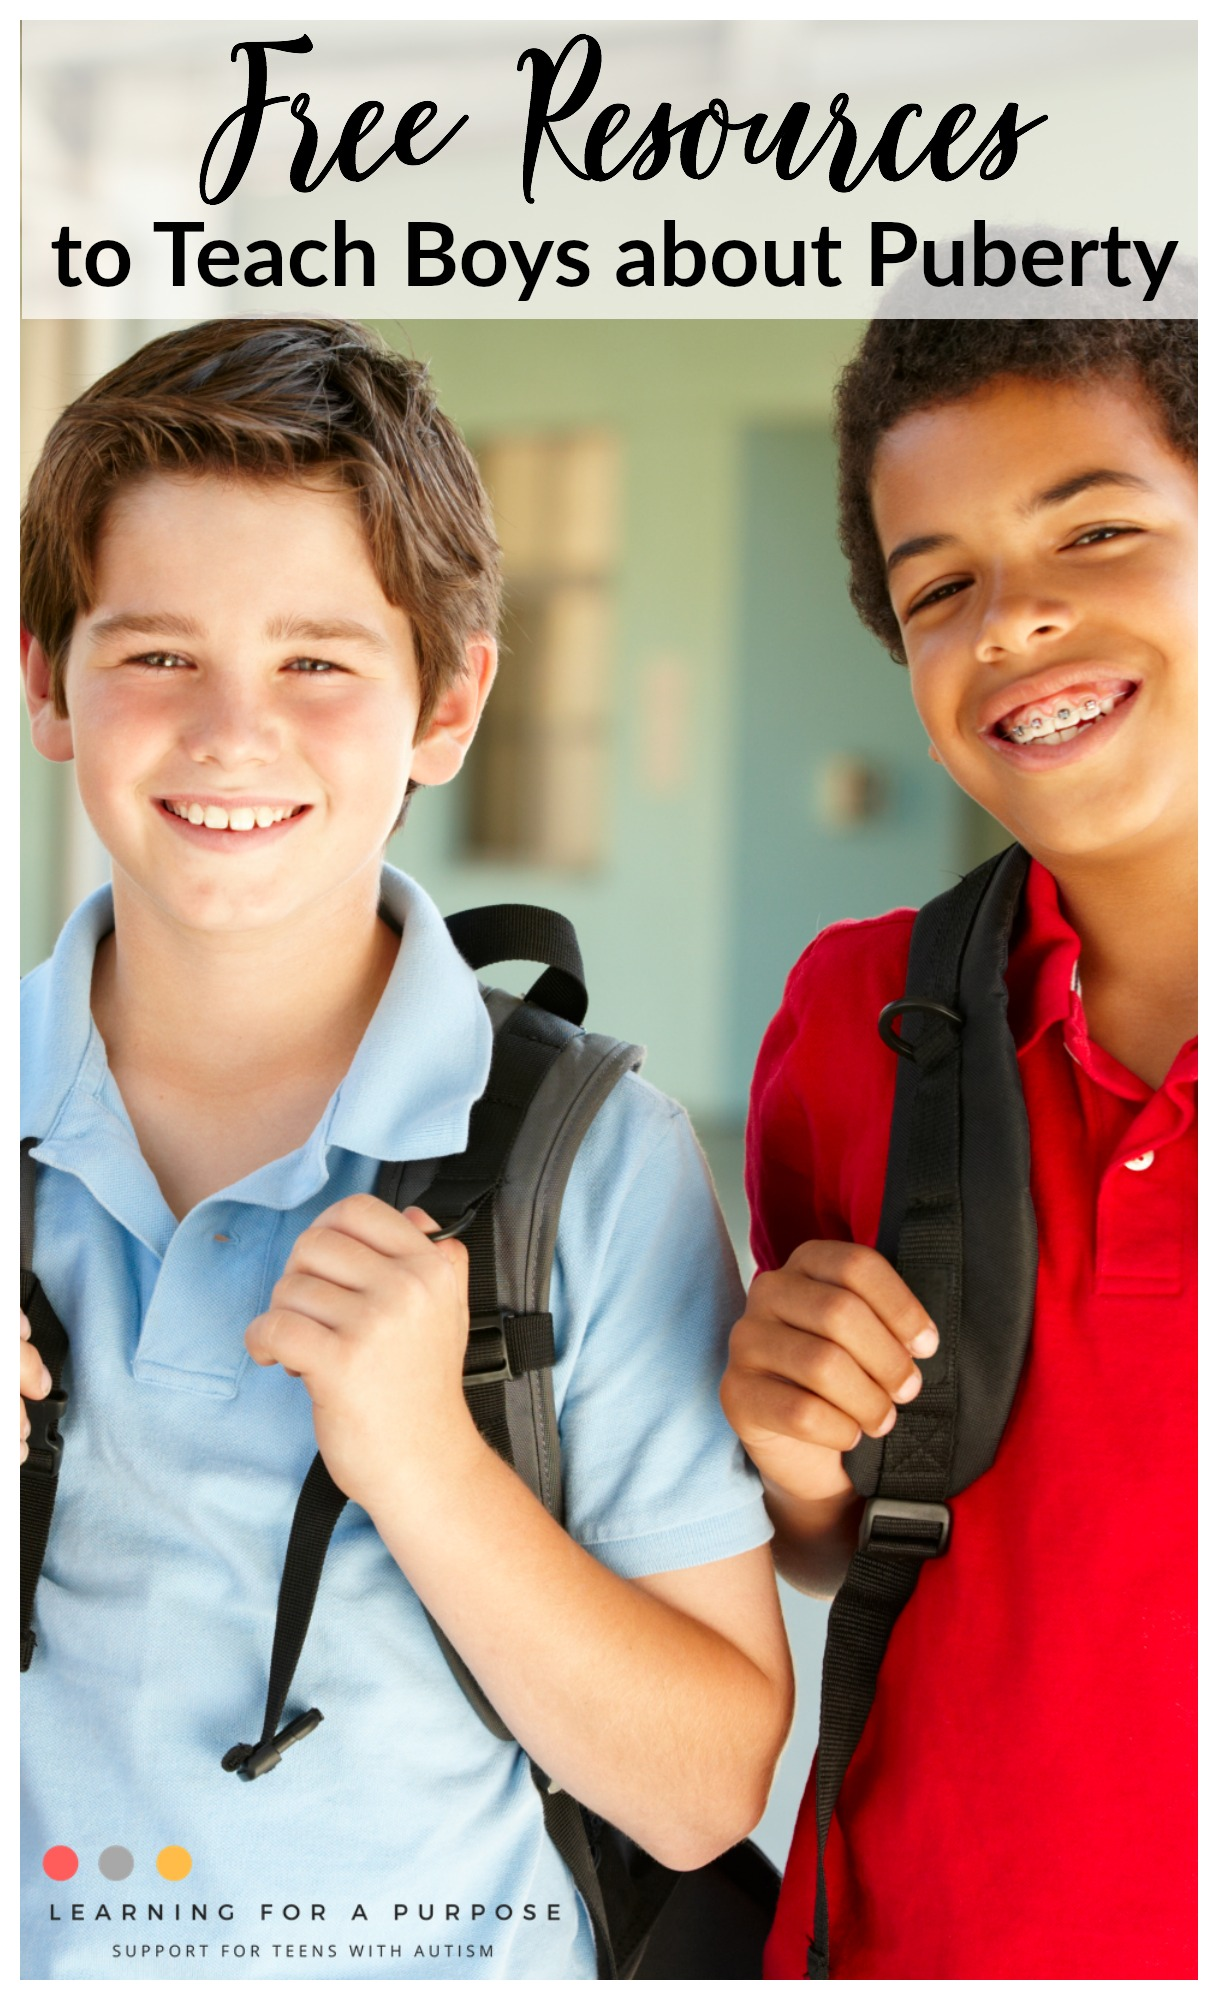 Free Resources to Teach Boys about Puberty #puberty #boys